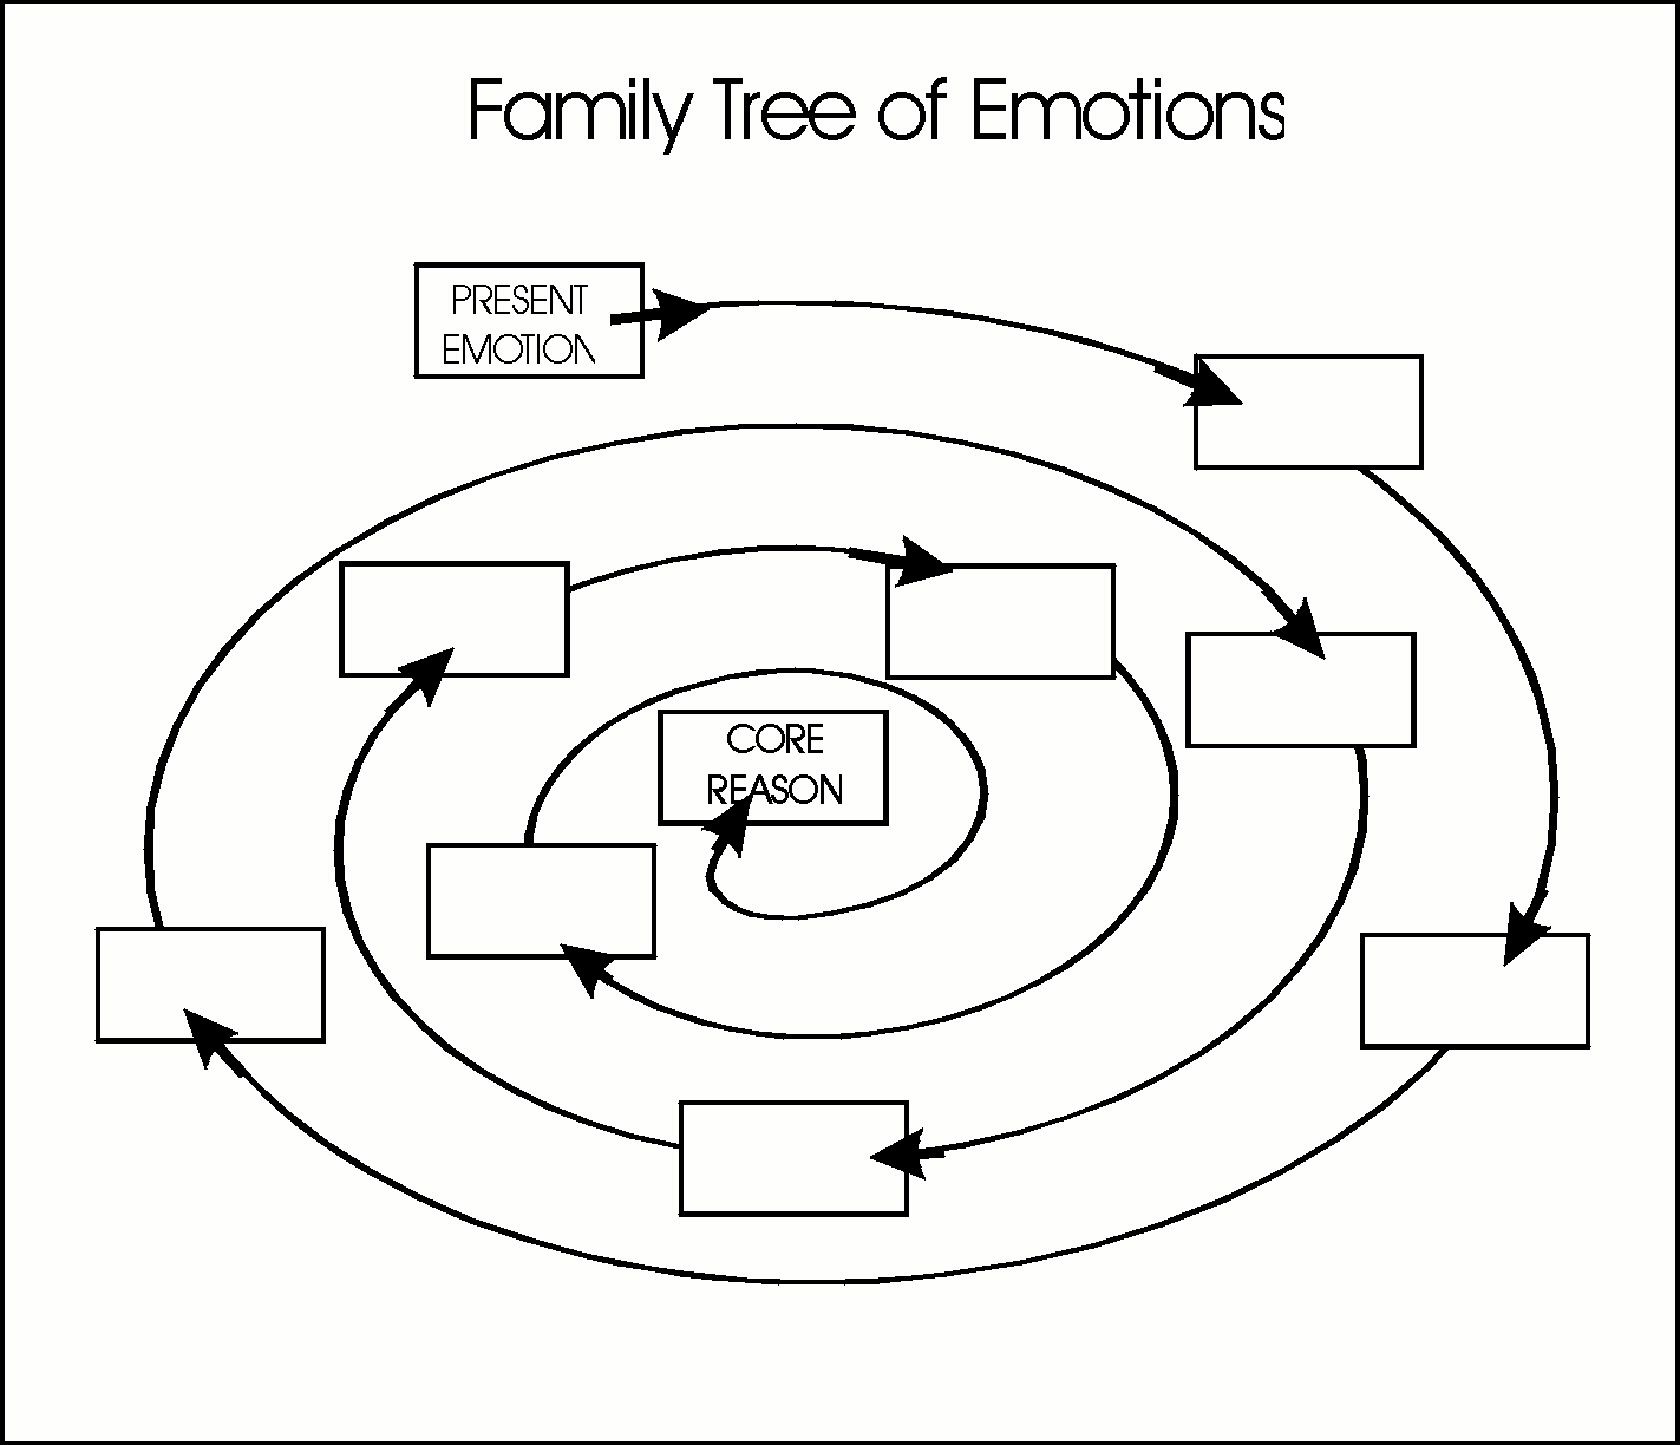 Uncategorized Family Therapy Worksheets family tree of emotions working your way to the core beliefs that are